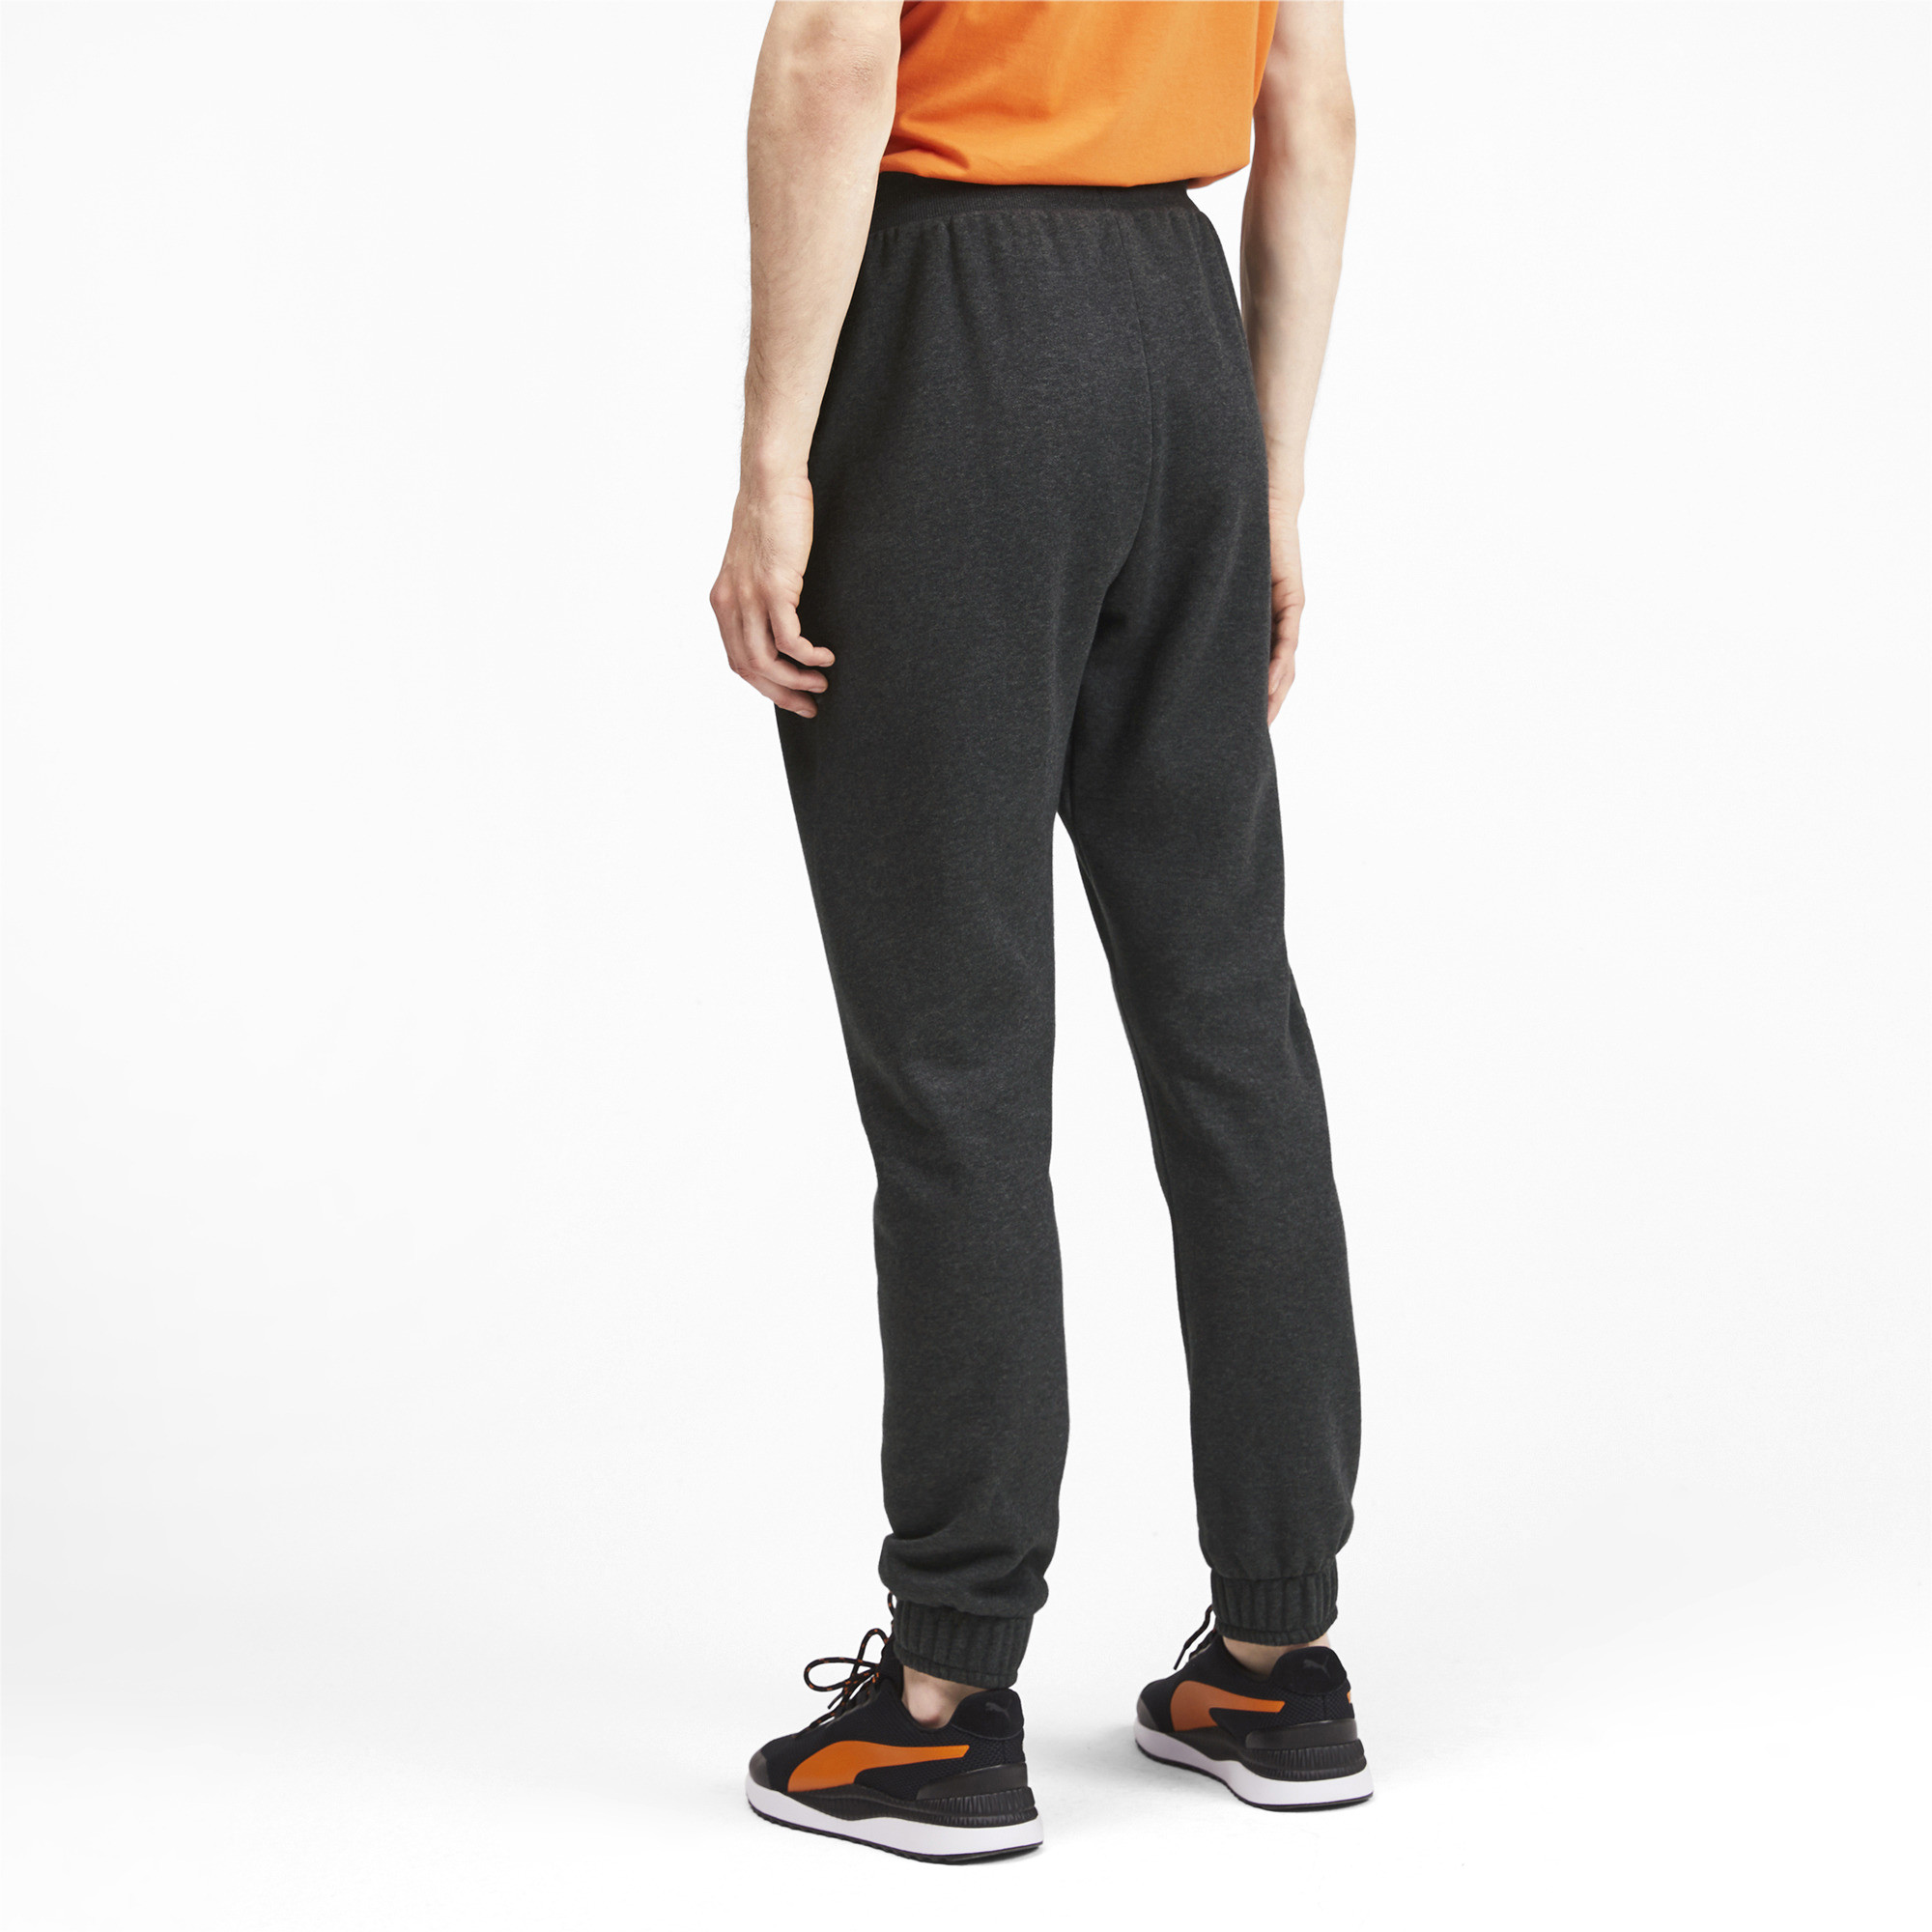 PUMA-Rebel-Bold-Men-039-s-Sweatpants-Men-Knitted-Pants-Basics thumbnail 15